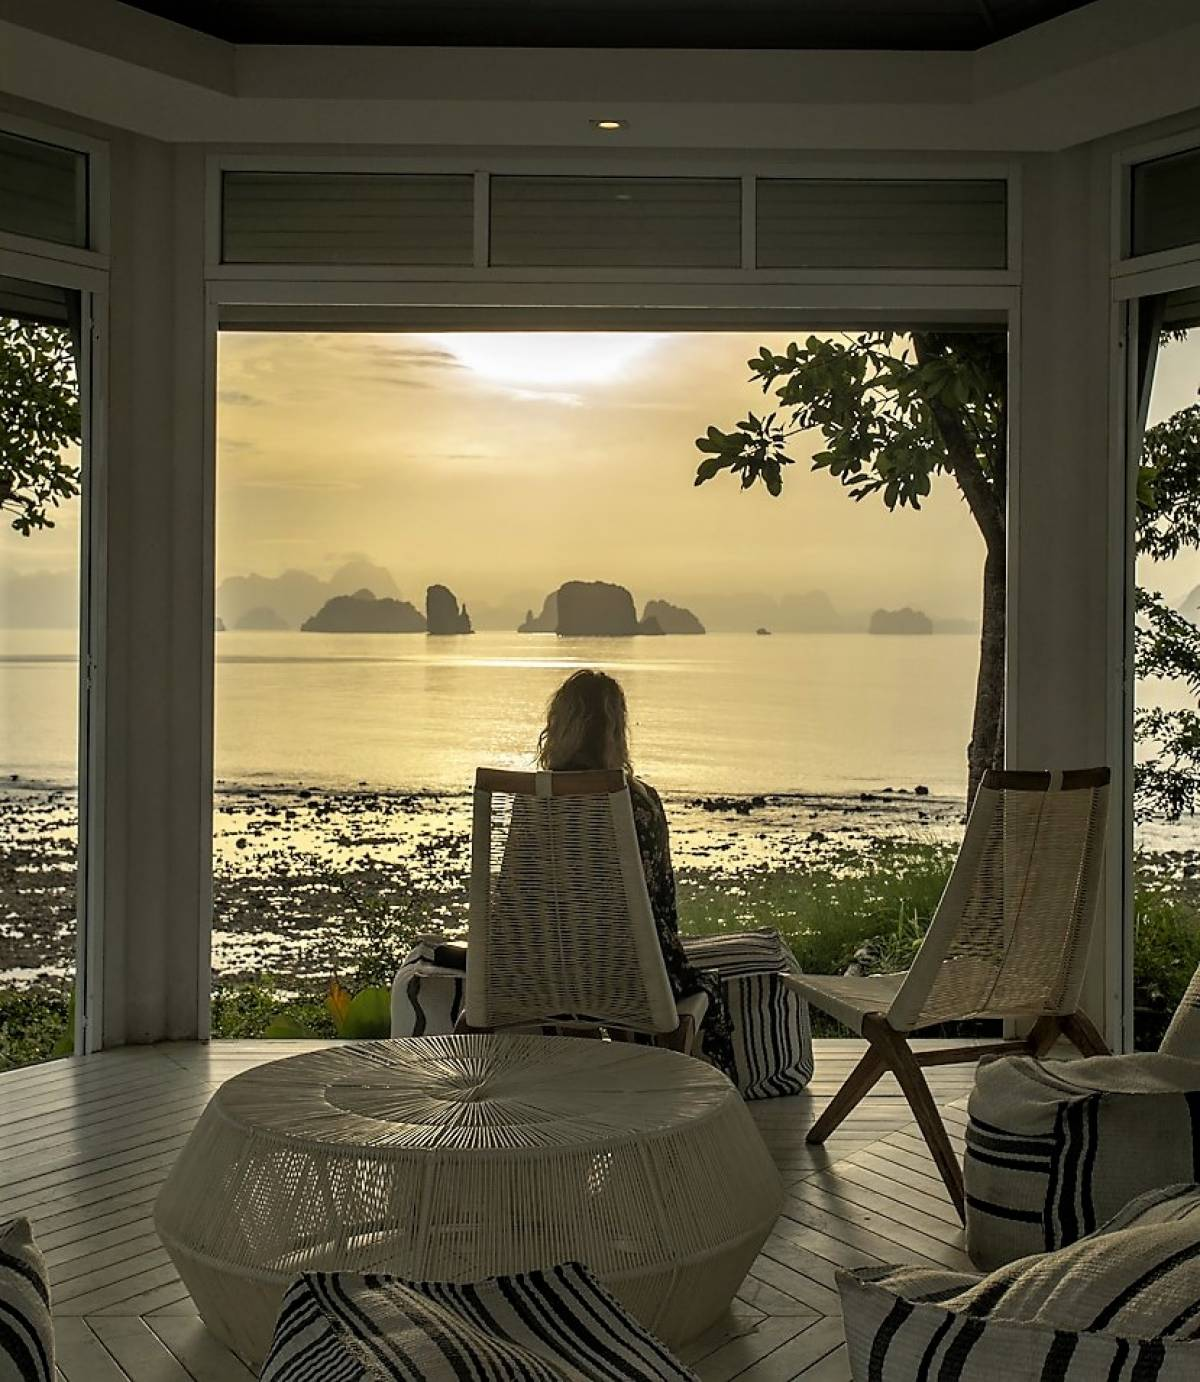 Small Luxury Hotels of the World Announces 500 Global Winners of #SLHFORHEROES